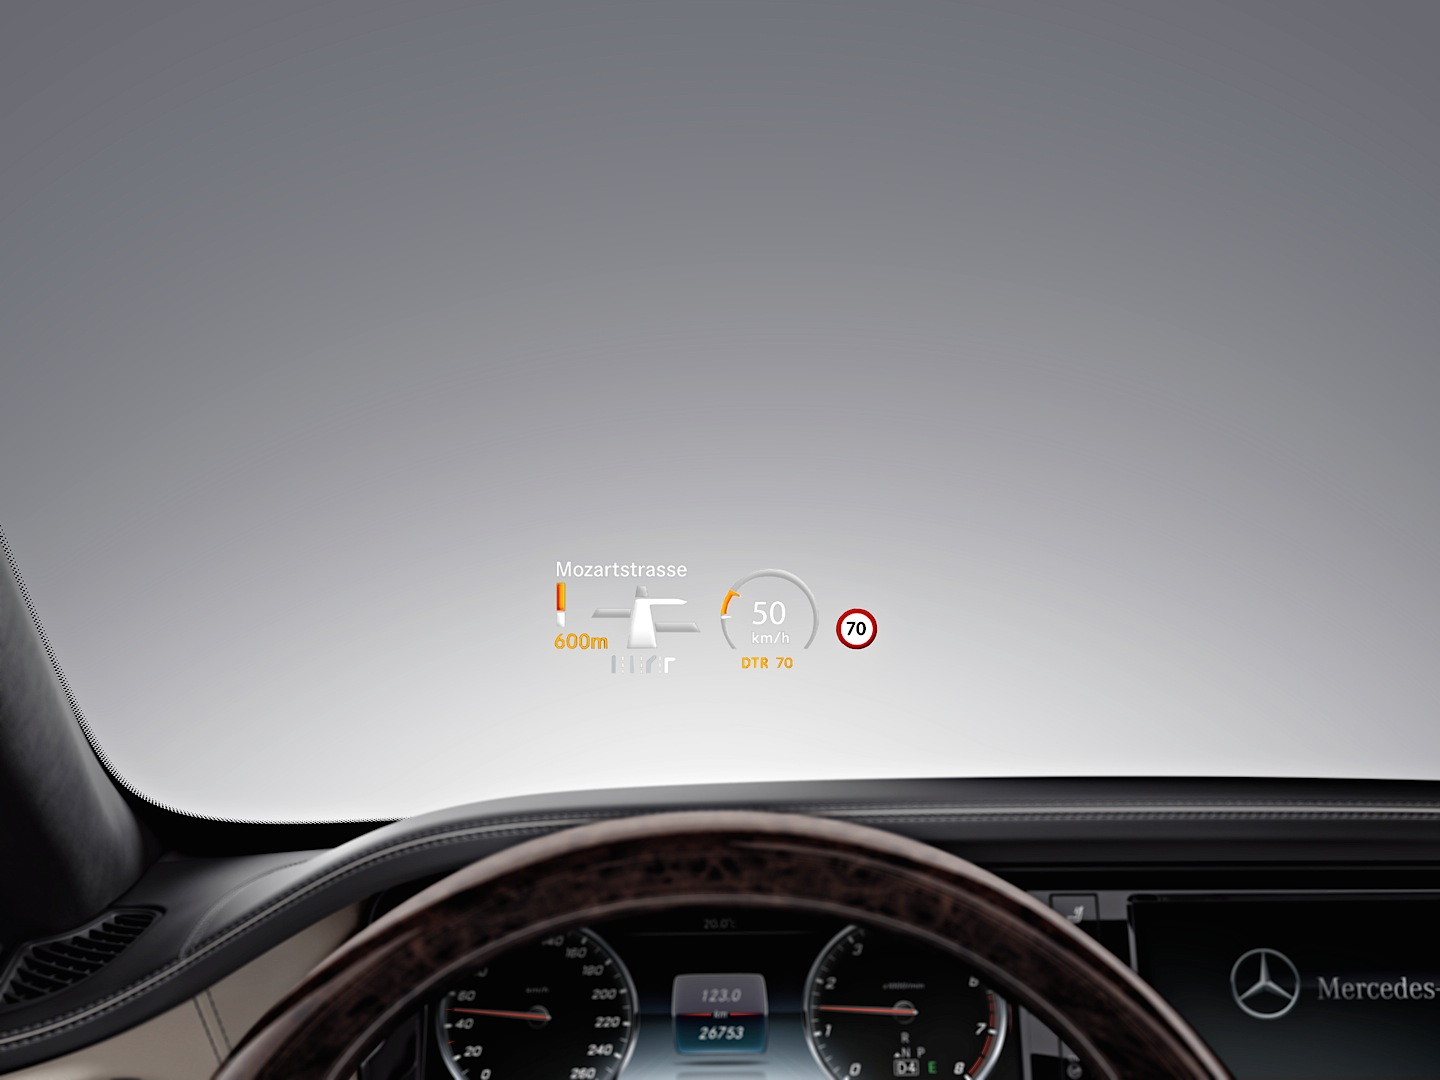 New features for the s class w222 in 2014 autoevolution for Mercedes benz heads up display